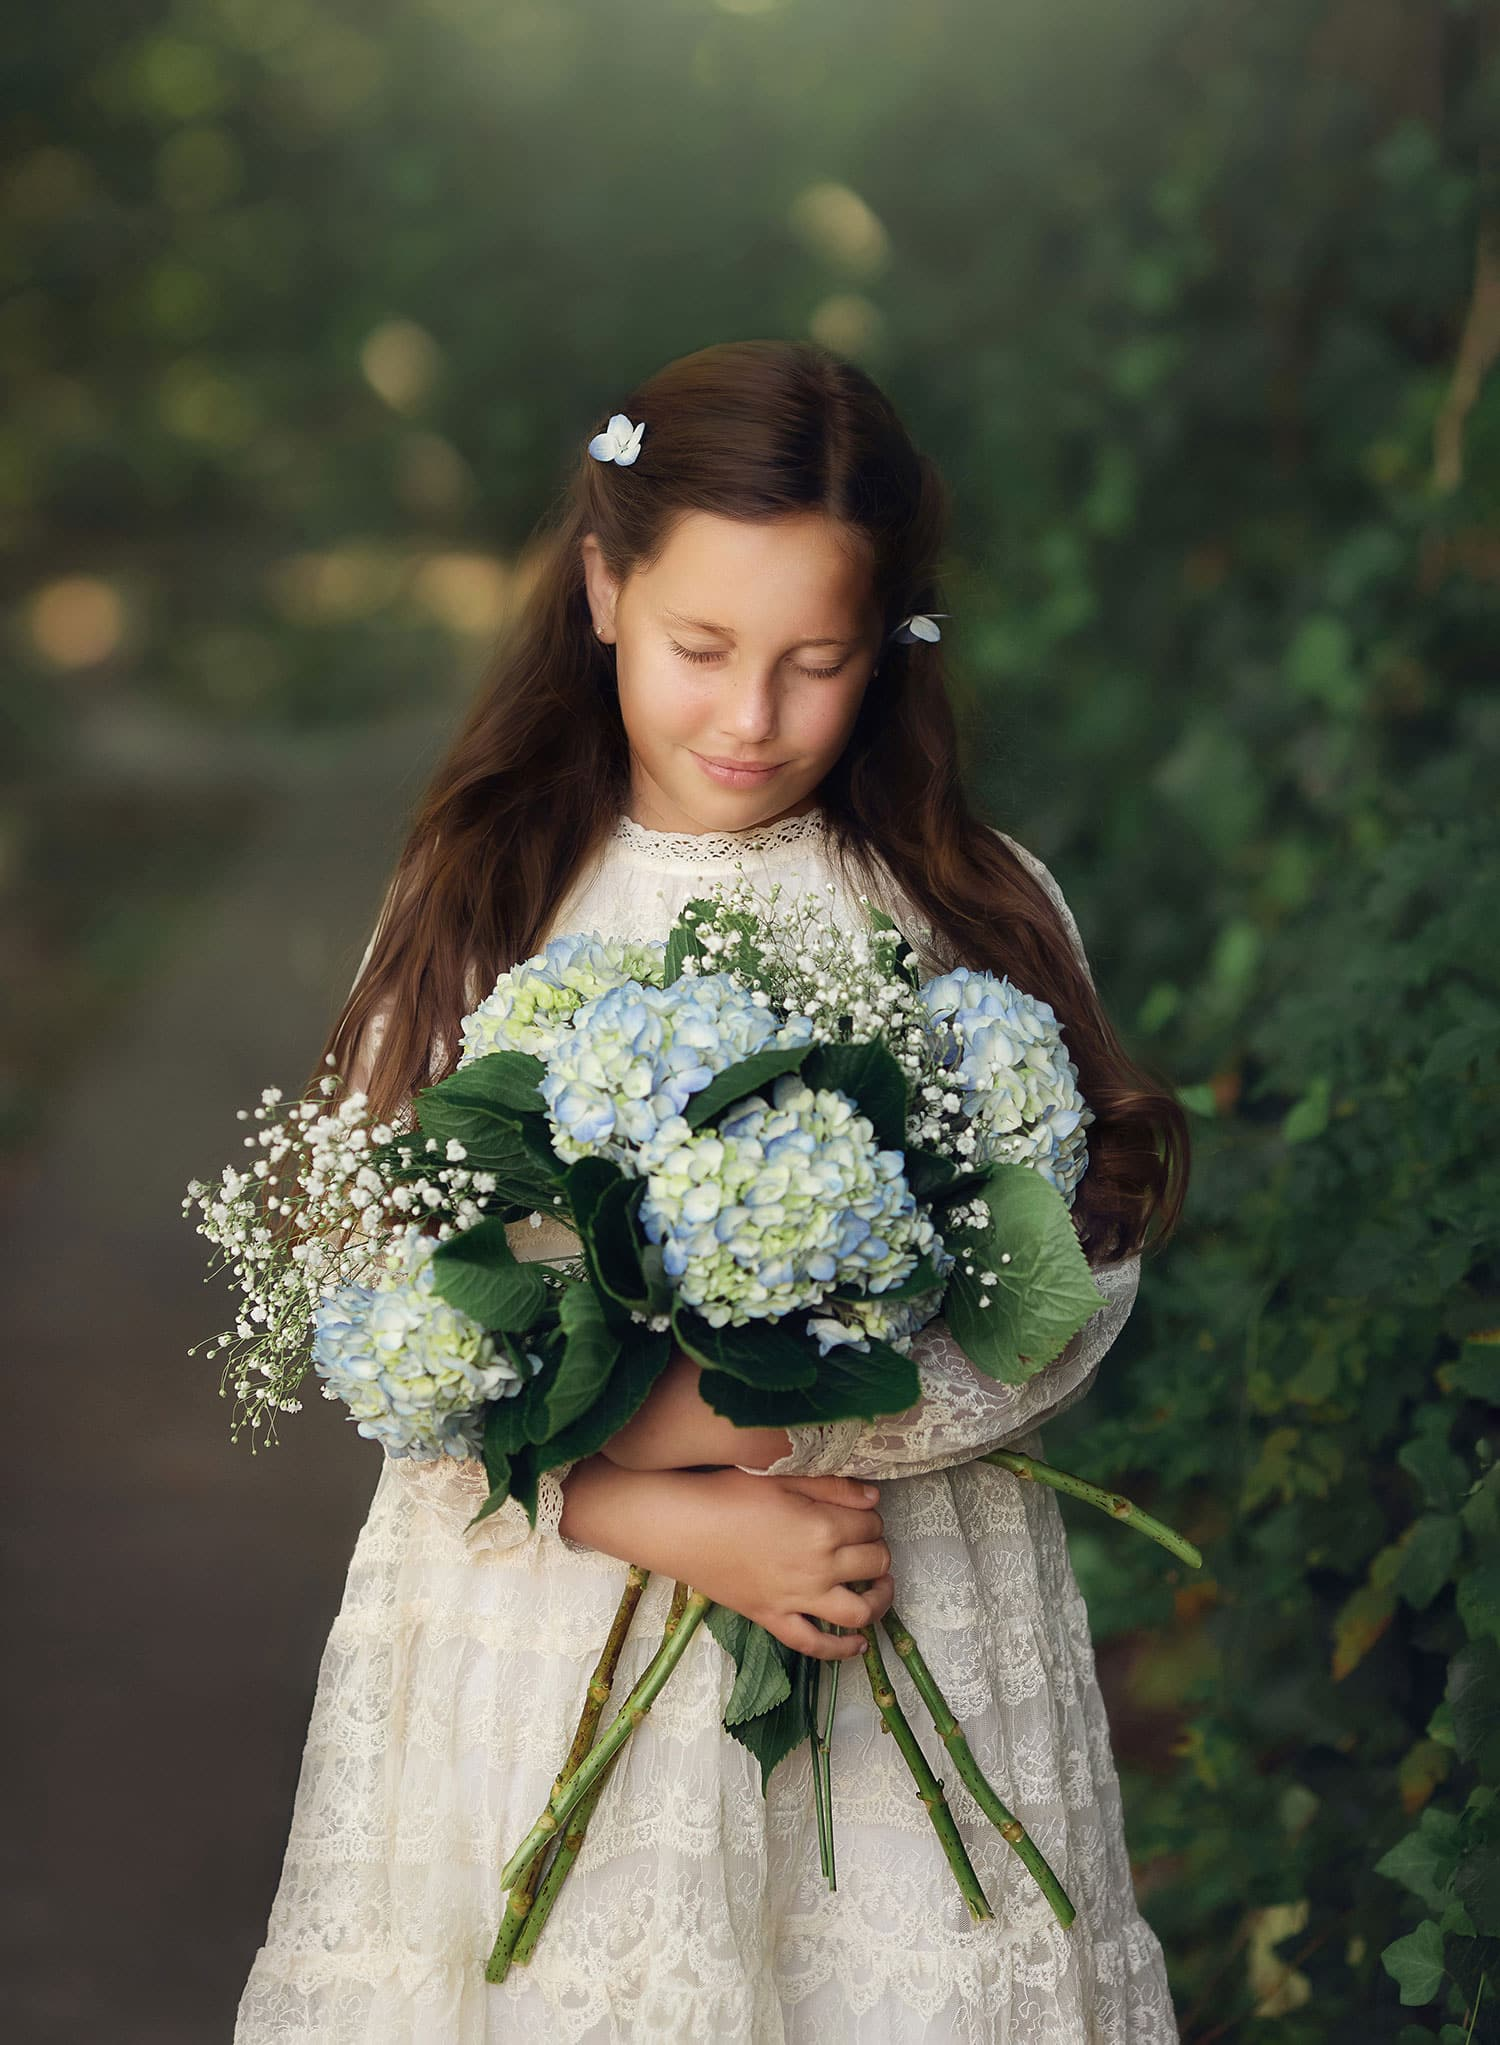 fine art photo of girl with hydrangeas